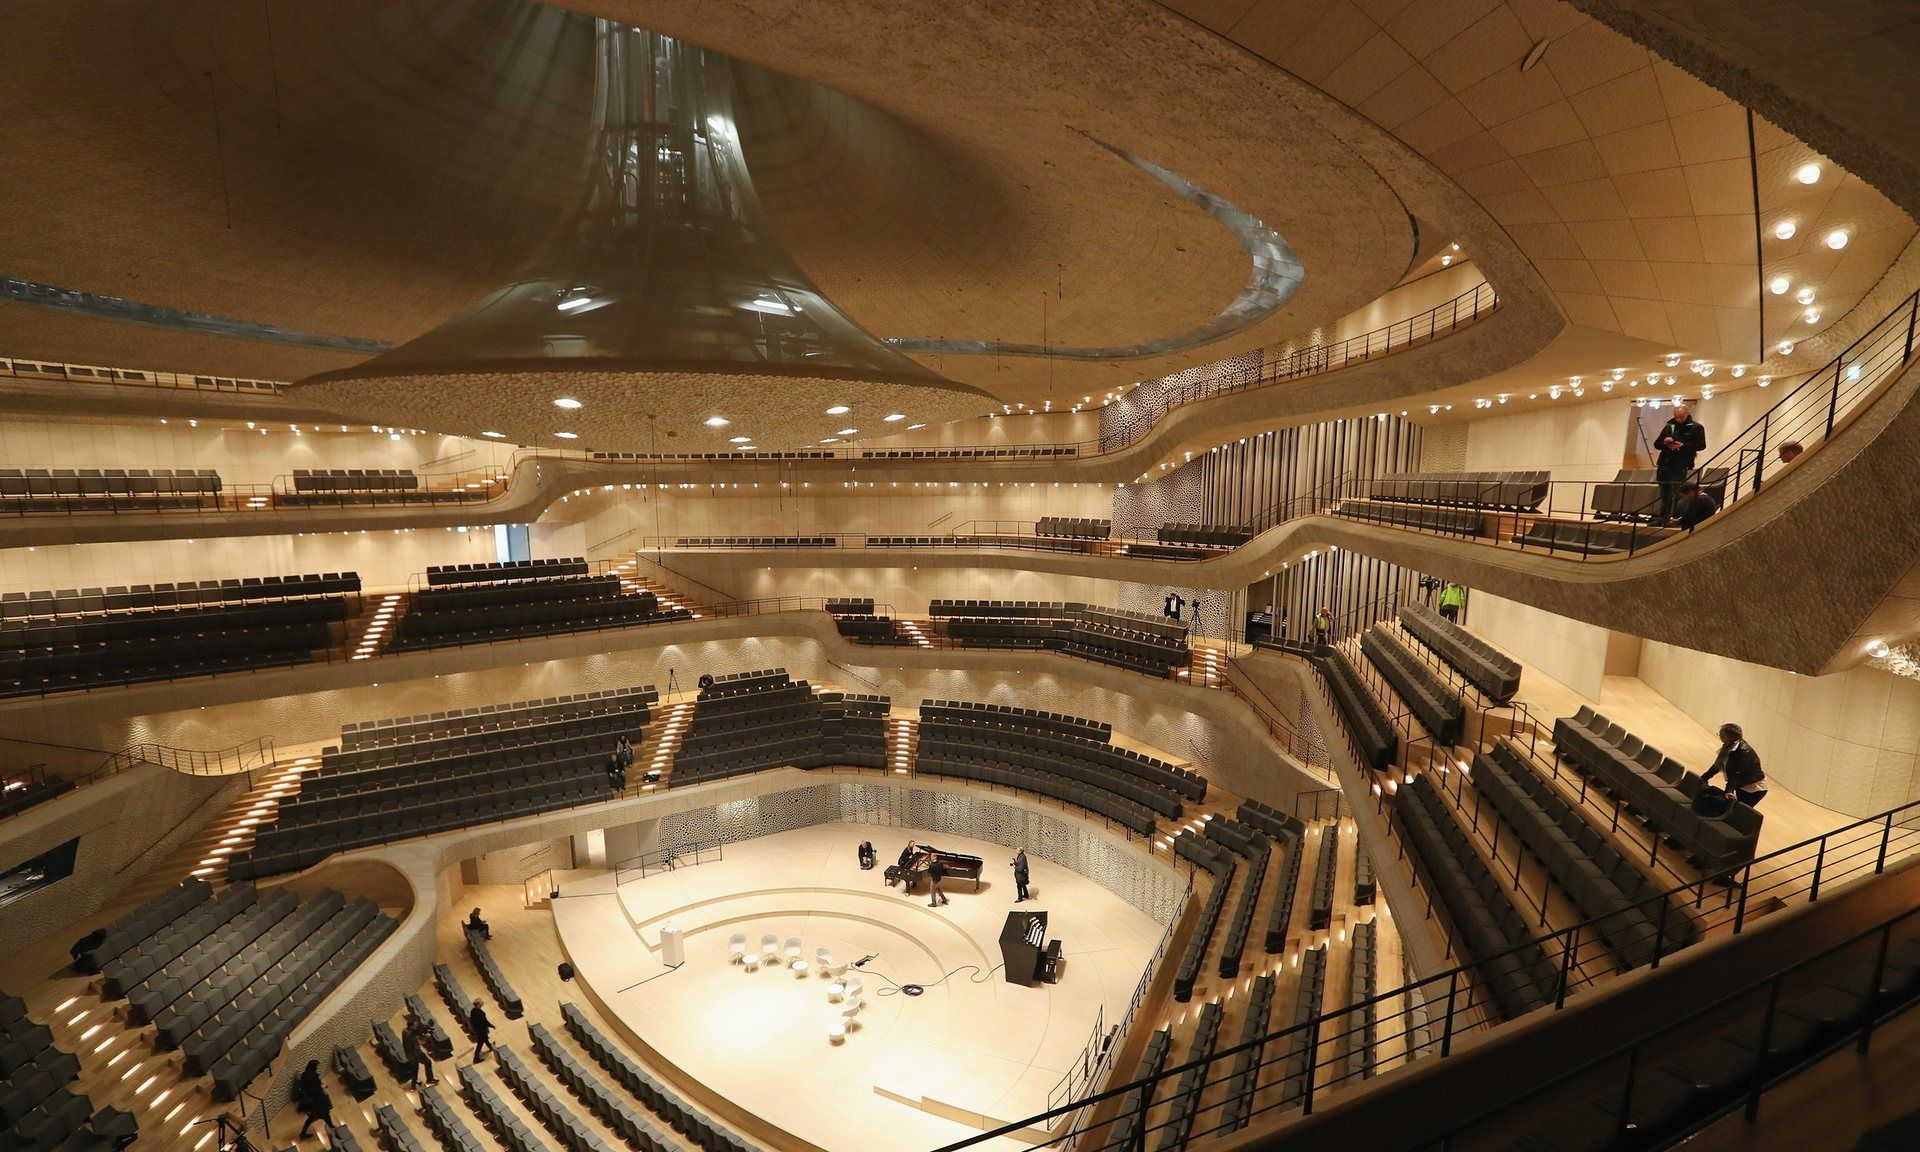 We Thought It Was Going To Destroy Us Herzog And De Meuron S Hamburg Miracle Concert Hall Theatre Interior Elbphilharmonie Concert Hall